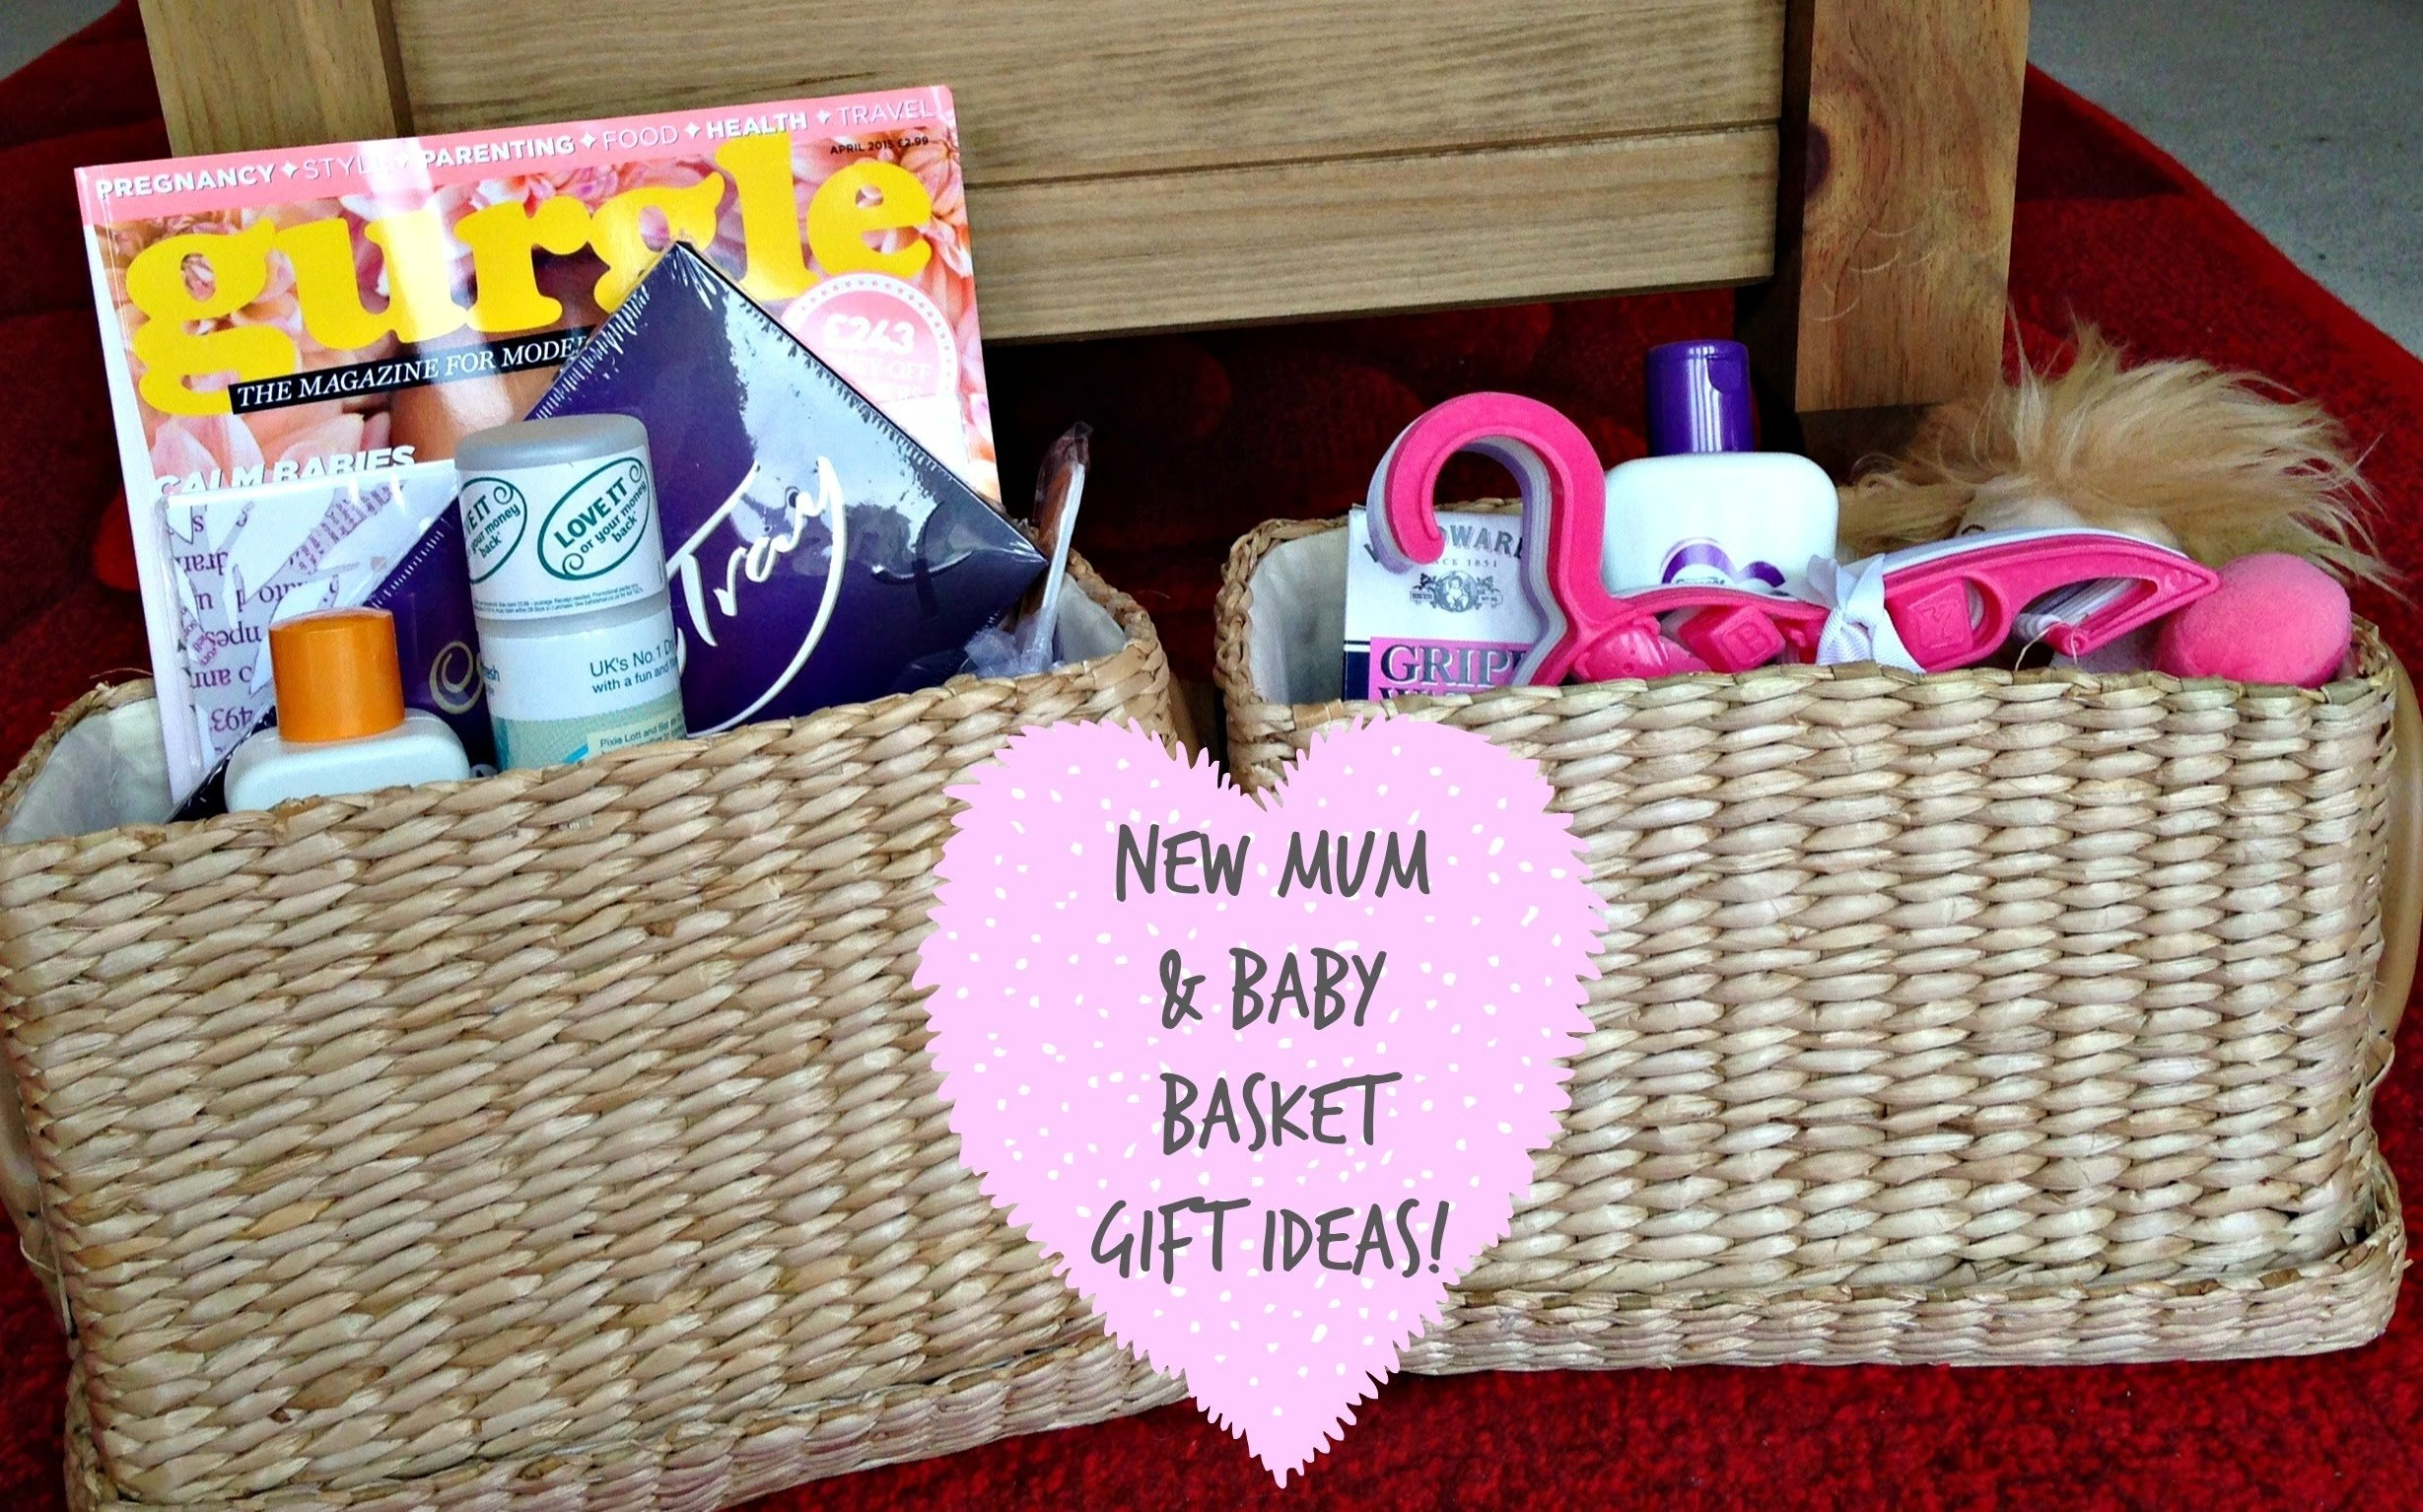 new mum & baby basket gift ideas! | kerry dyer - youtube